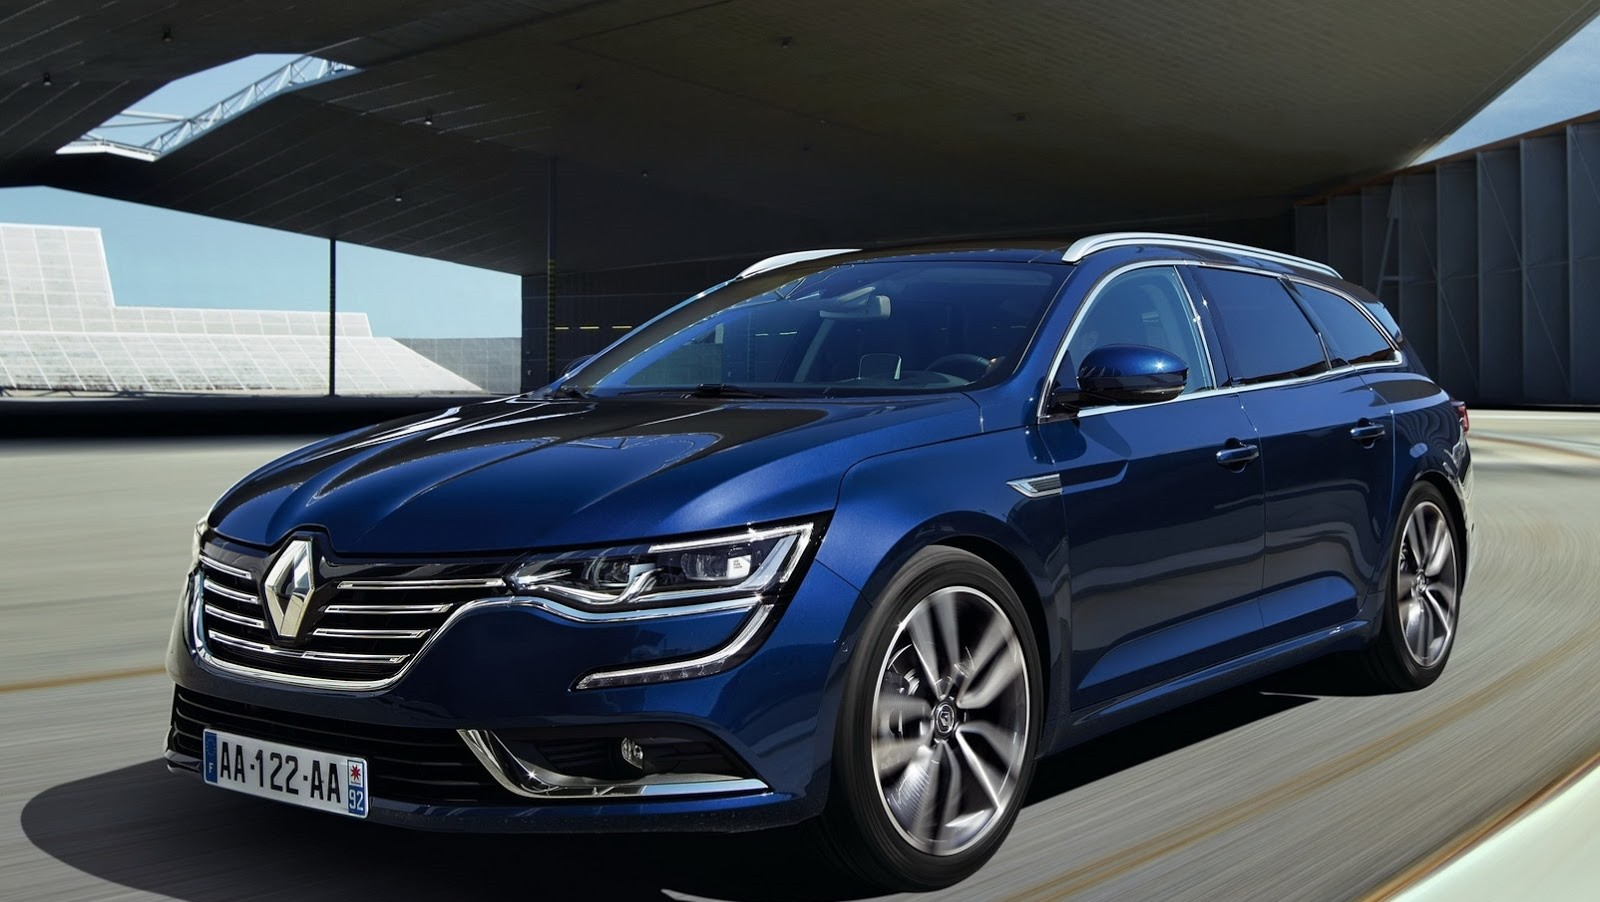 2016 renault talisman laguna. Black Bedroom Furniture Sets. Home Design Ideas